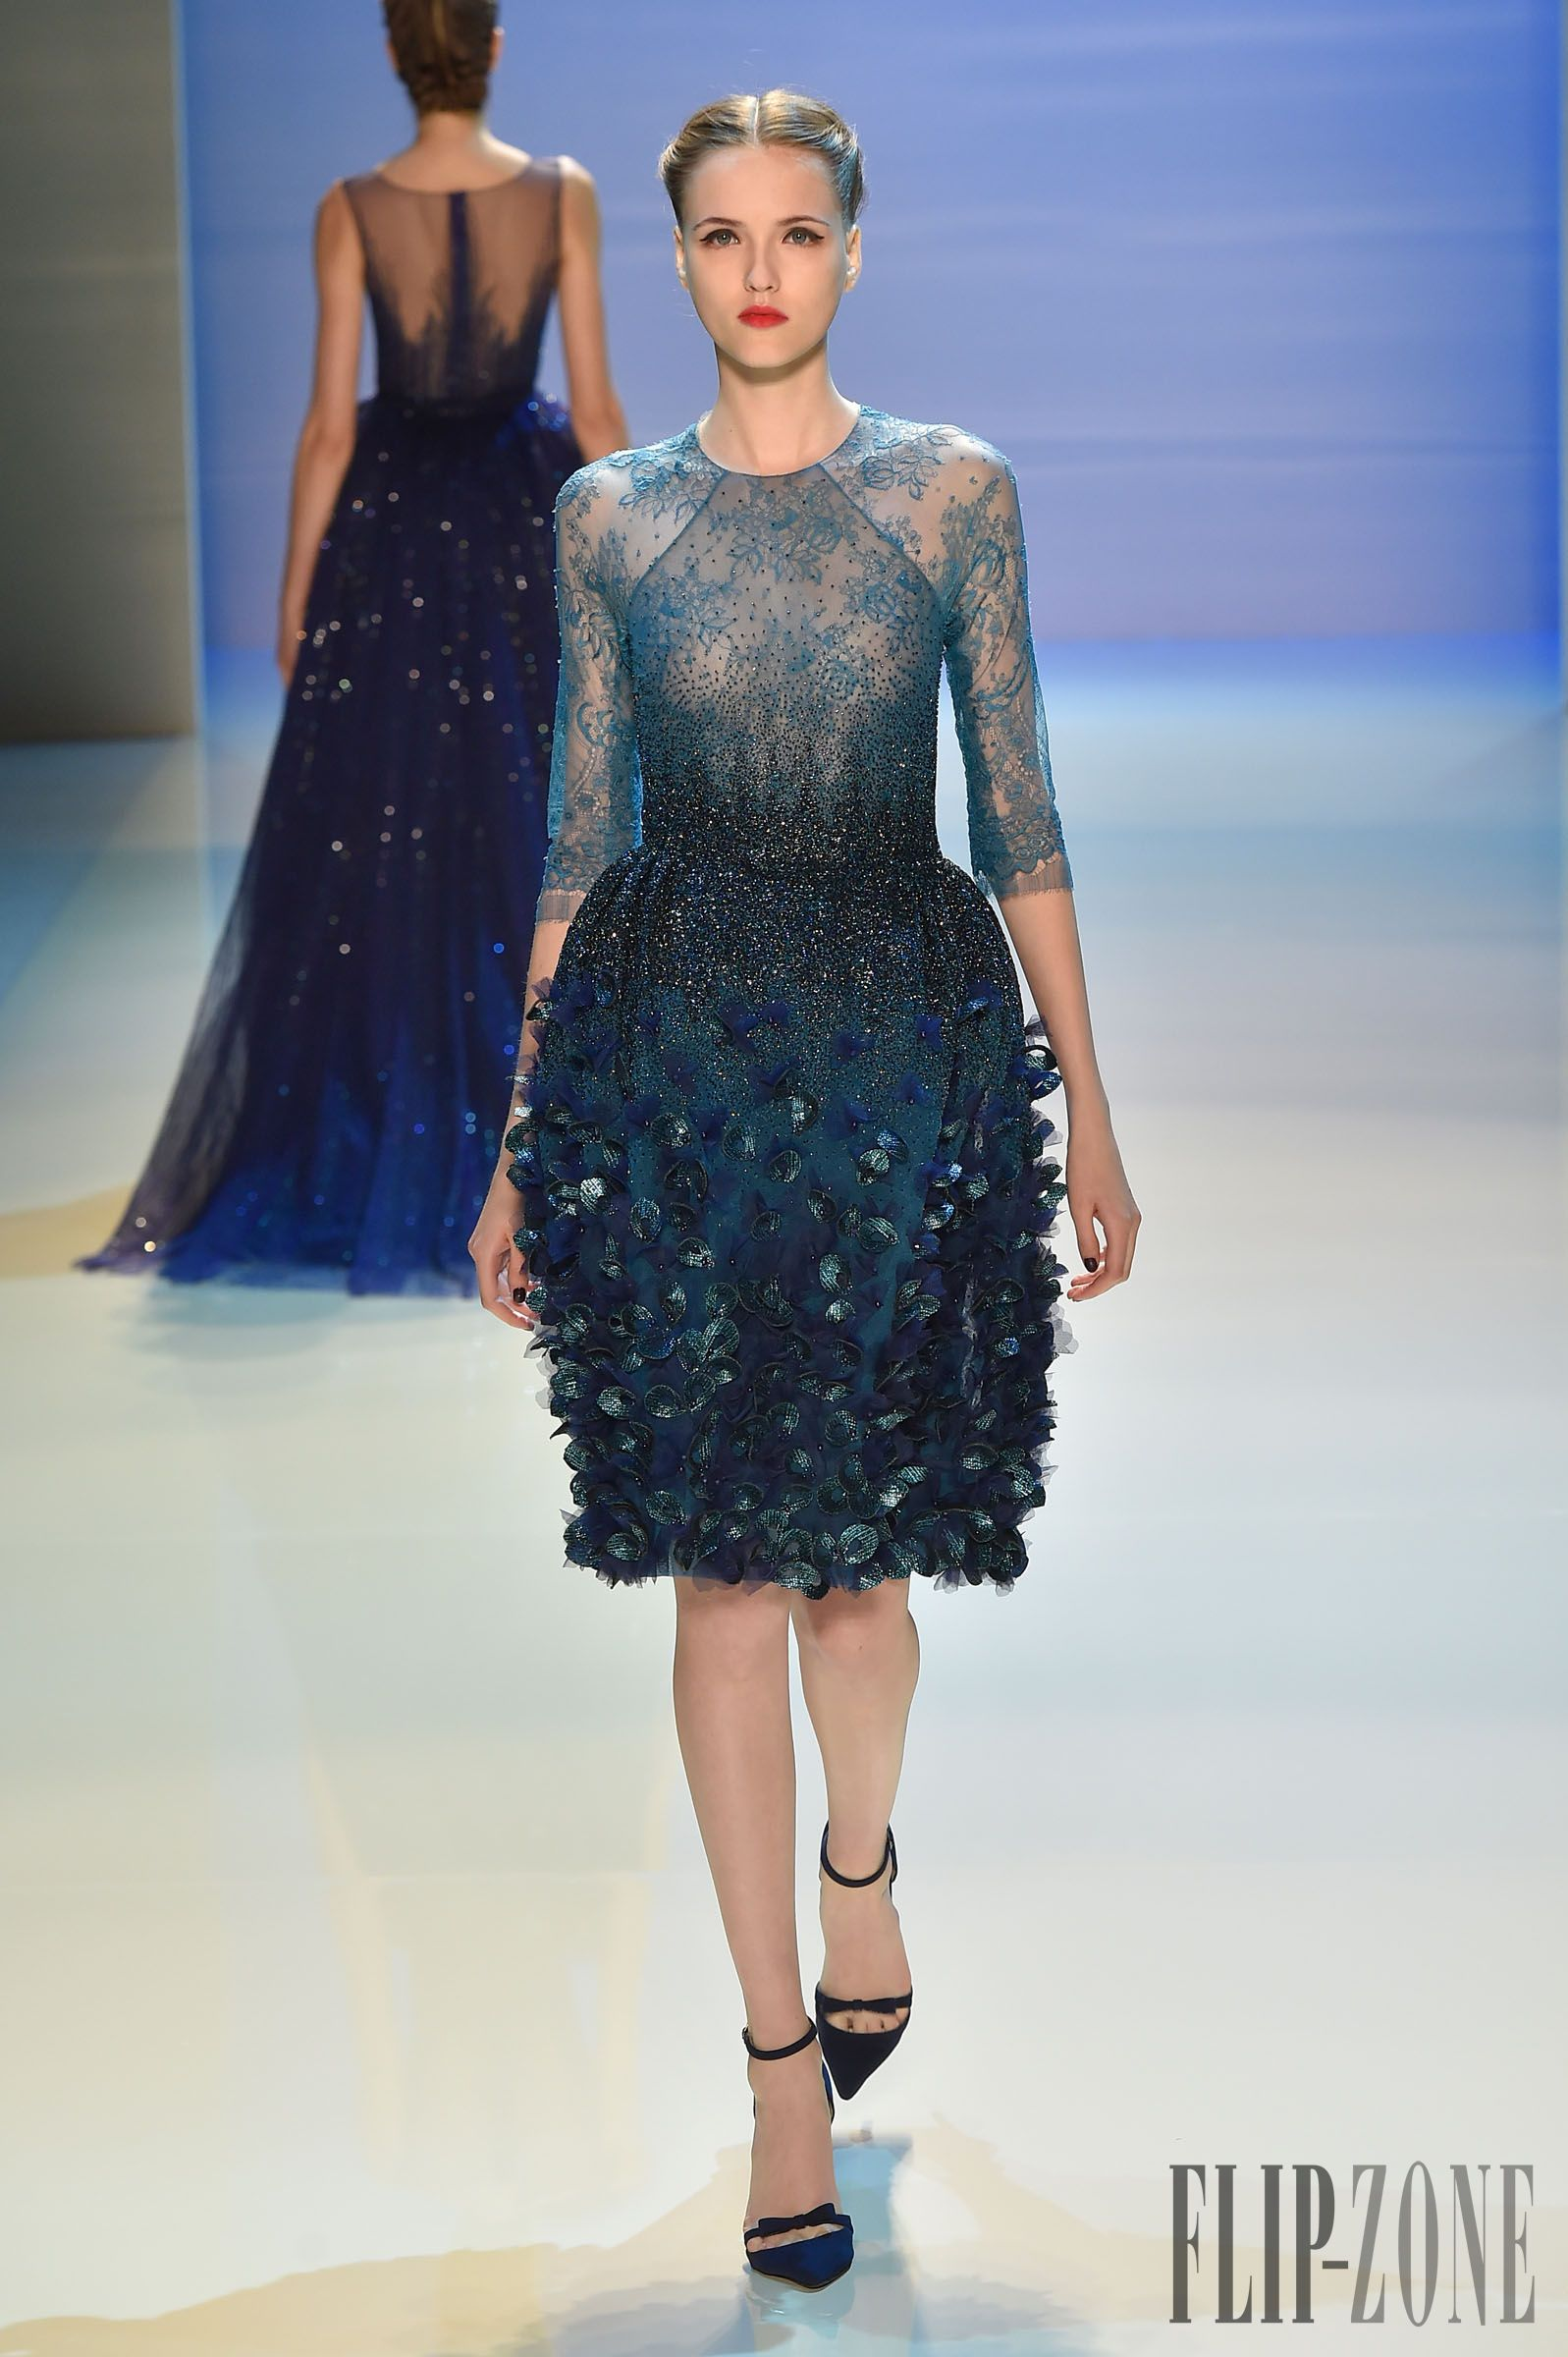 Georges Hobeika Official pictures F/W 2014-2015 - Couture - http://www.flip-zone.net/fashion/couture-1/fashion-houses/georges-hobeika-5253